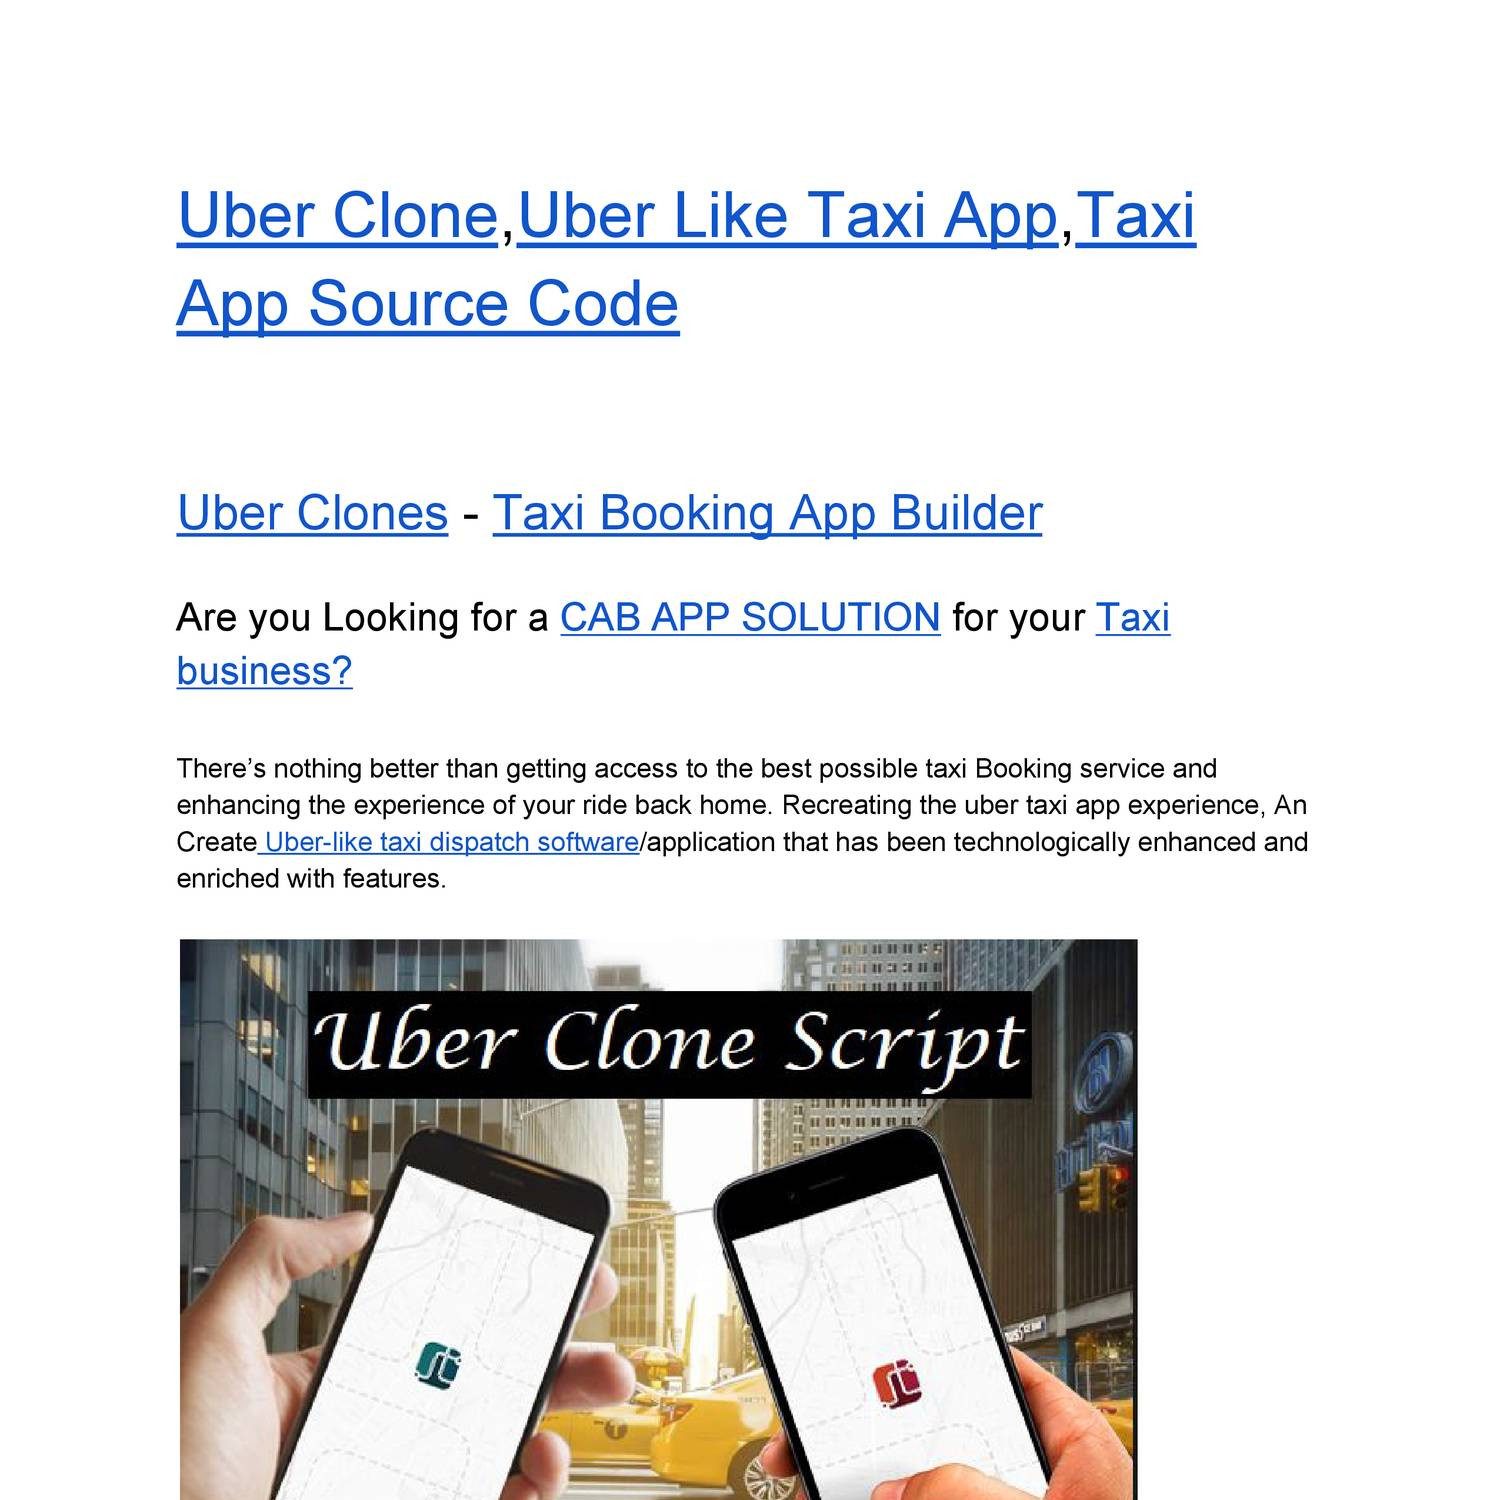 Uber Clone,Uber Like Taxi App,Taxi App Source Code pdf | DocDroid